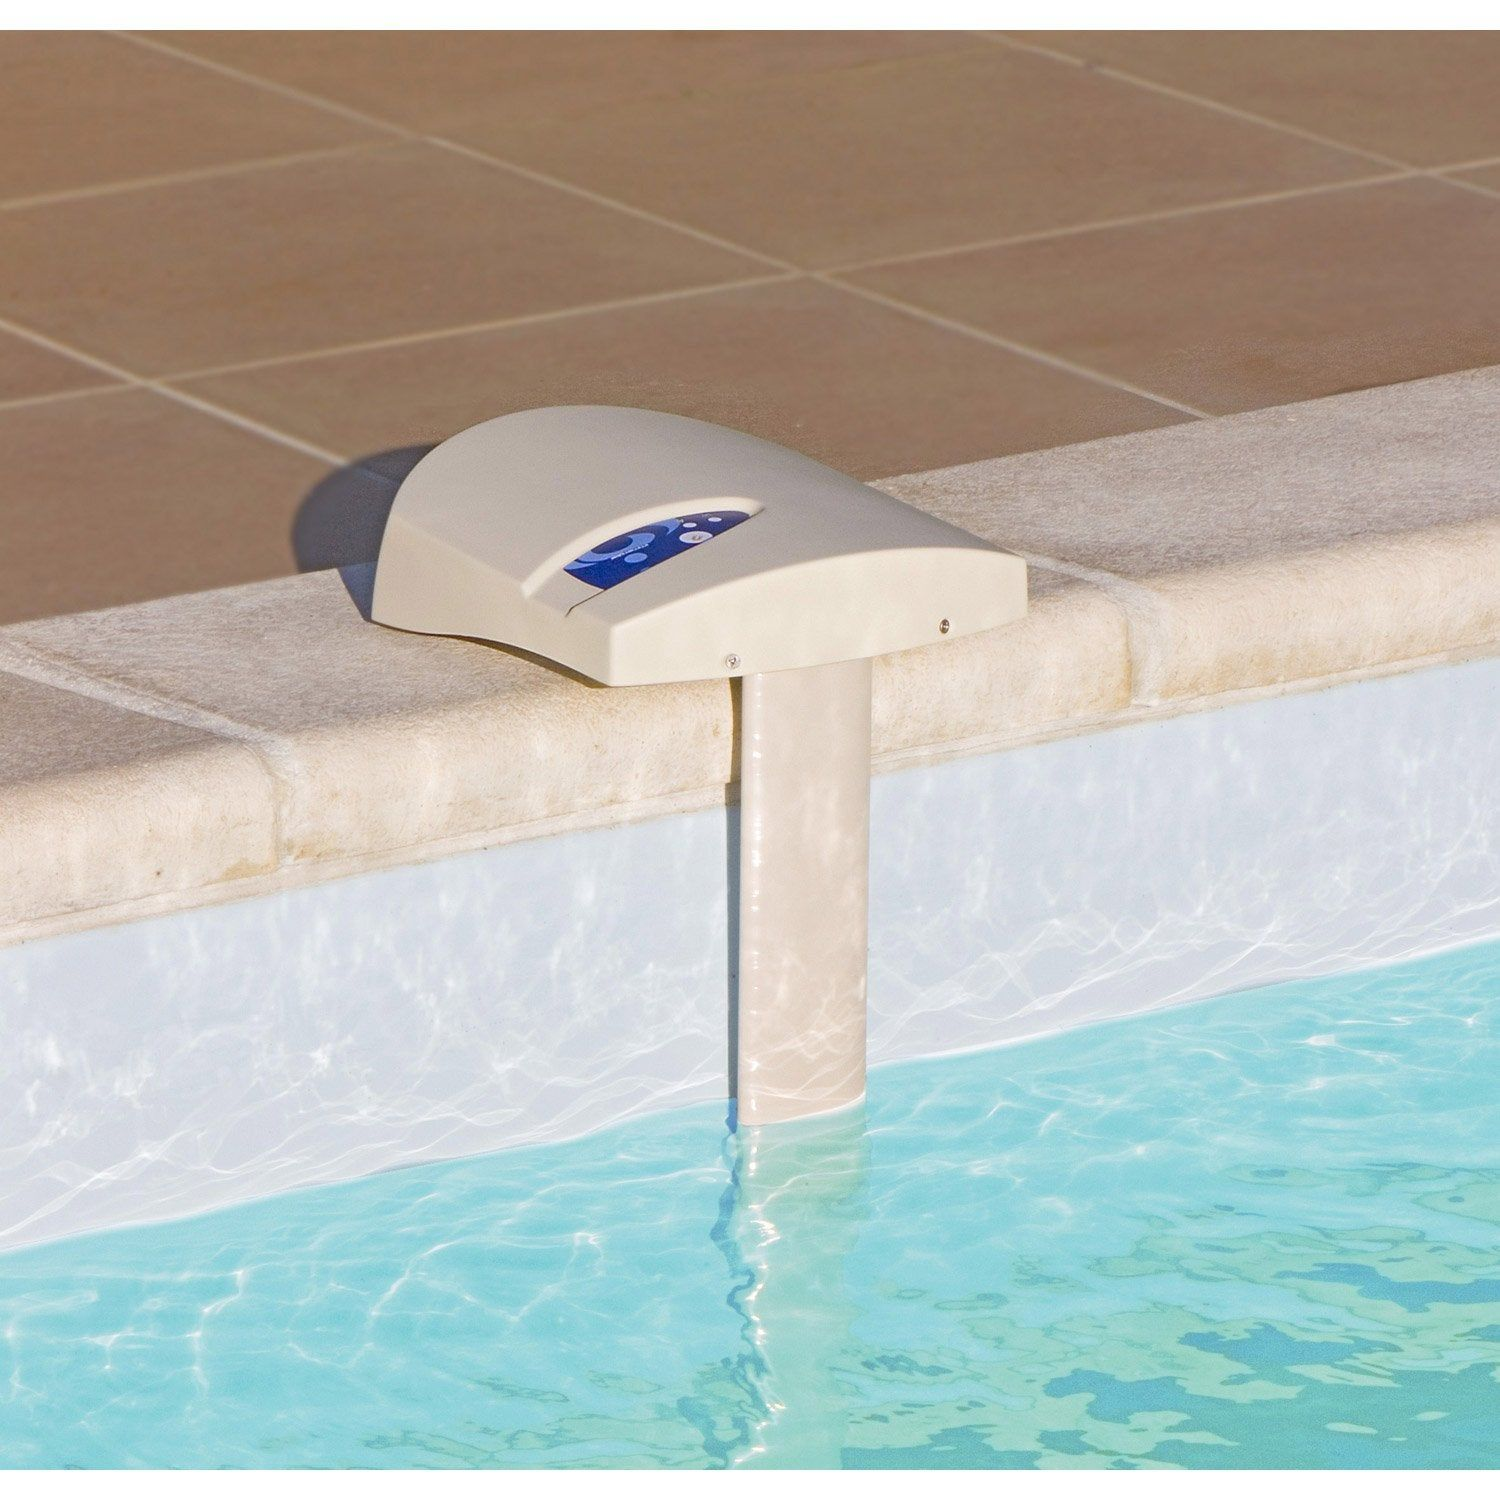 Kit Alarme Pour Piscine Enterree A Immersion Visiopool 20m2 Piscine Piscine Enterree Accessoires De Piscine